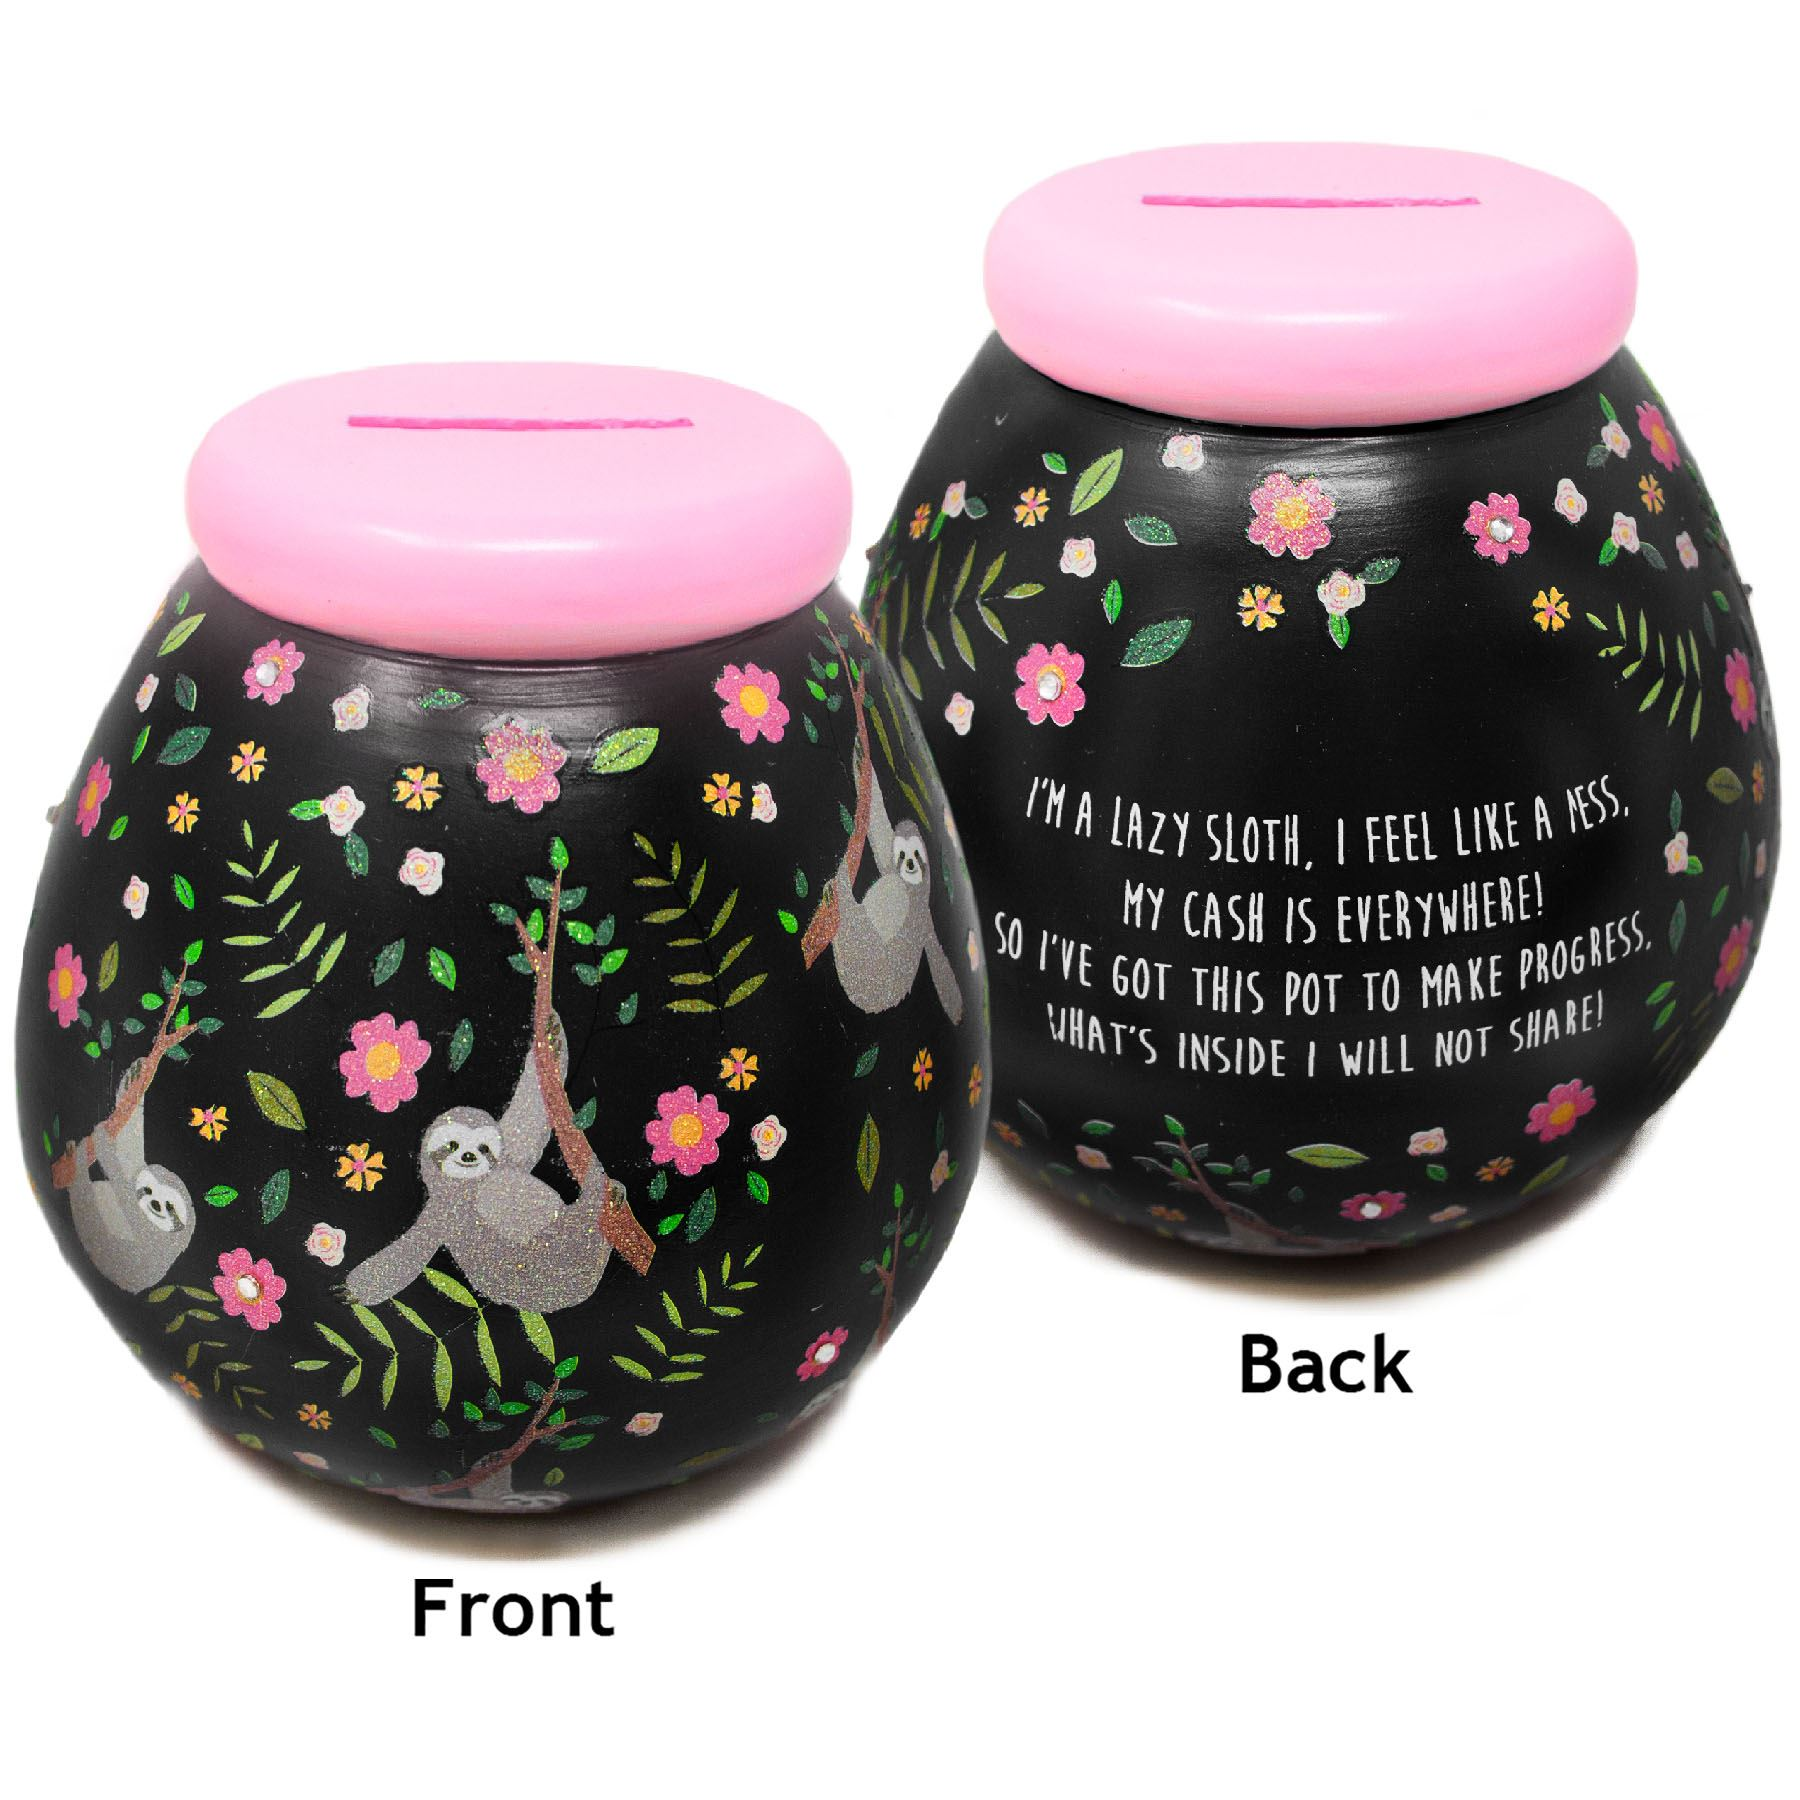 I Love You To The Moon And Back Pot of Dreams Money Pot